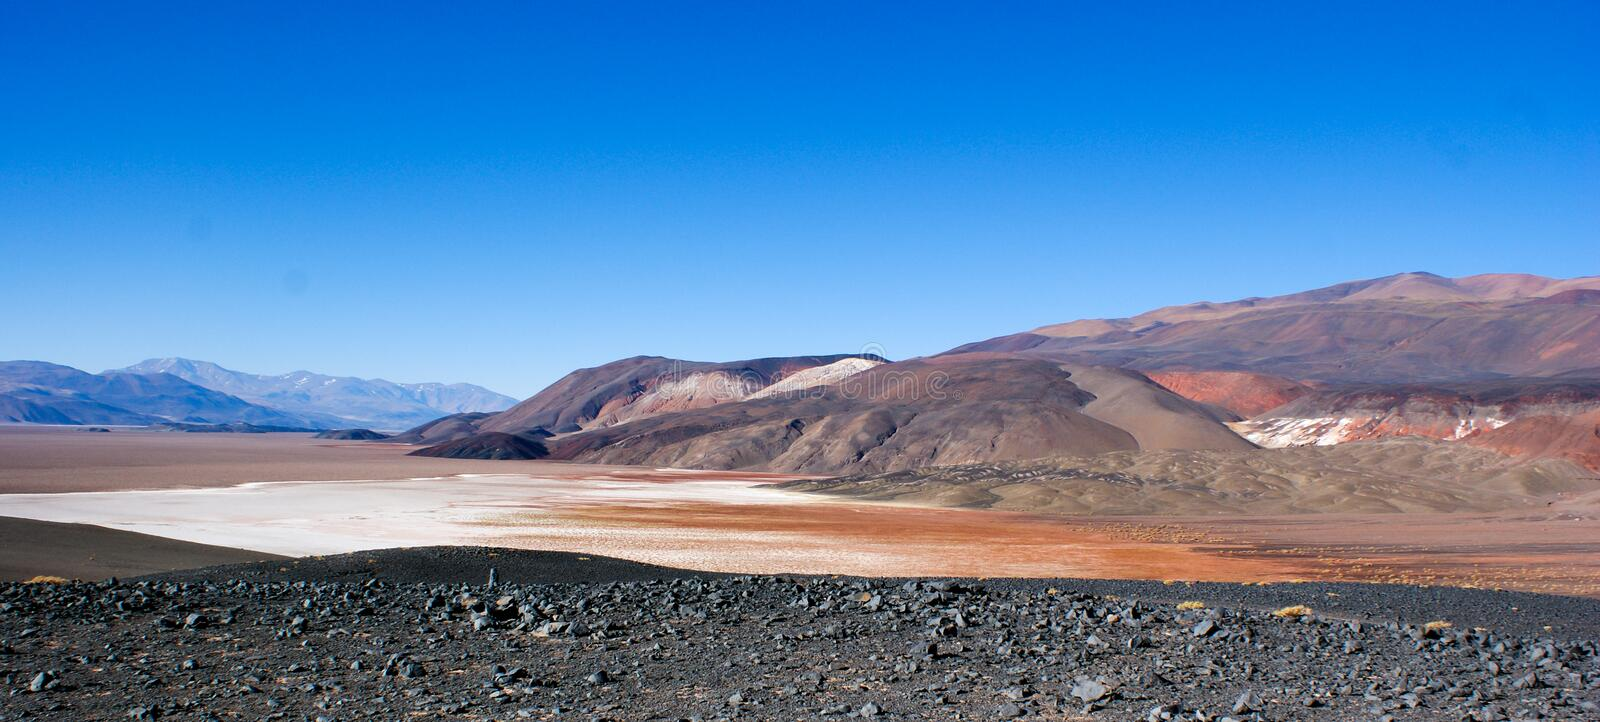 View of the colored hills and mountains of Antofagasta De La Sierra, Argentina royalty free stock photos